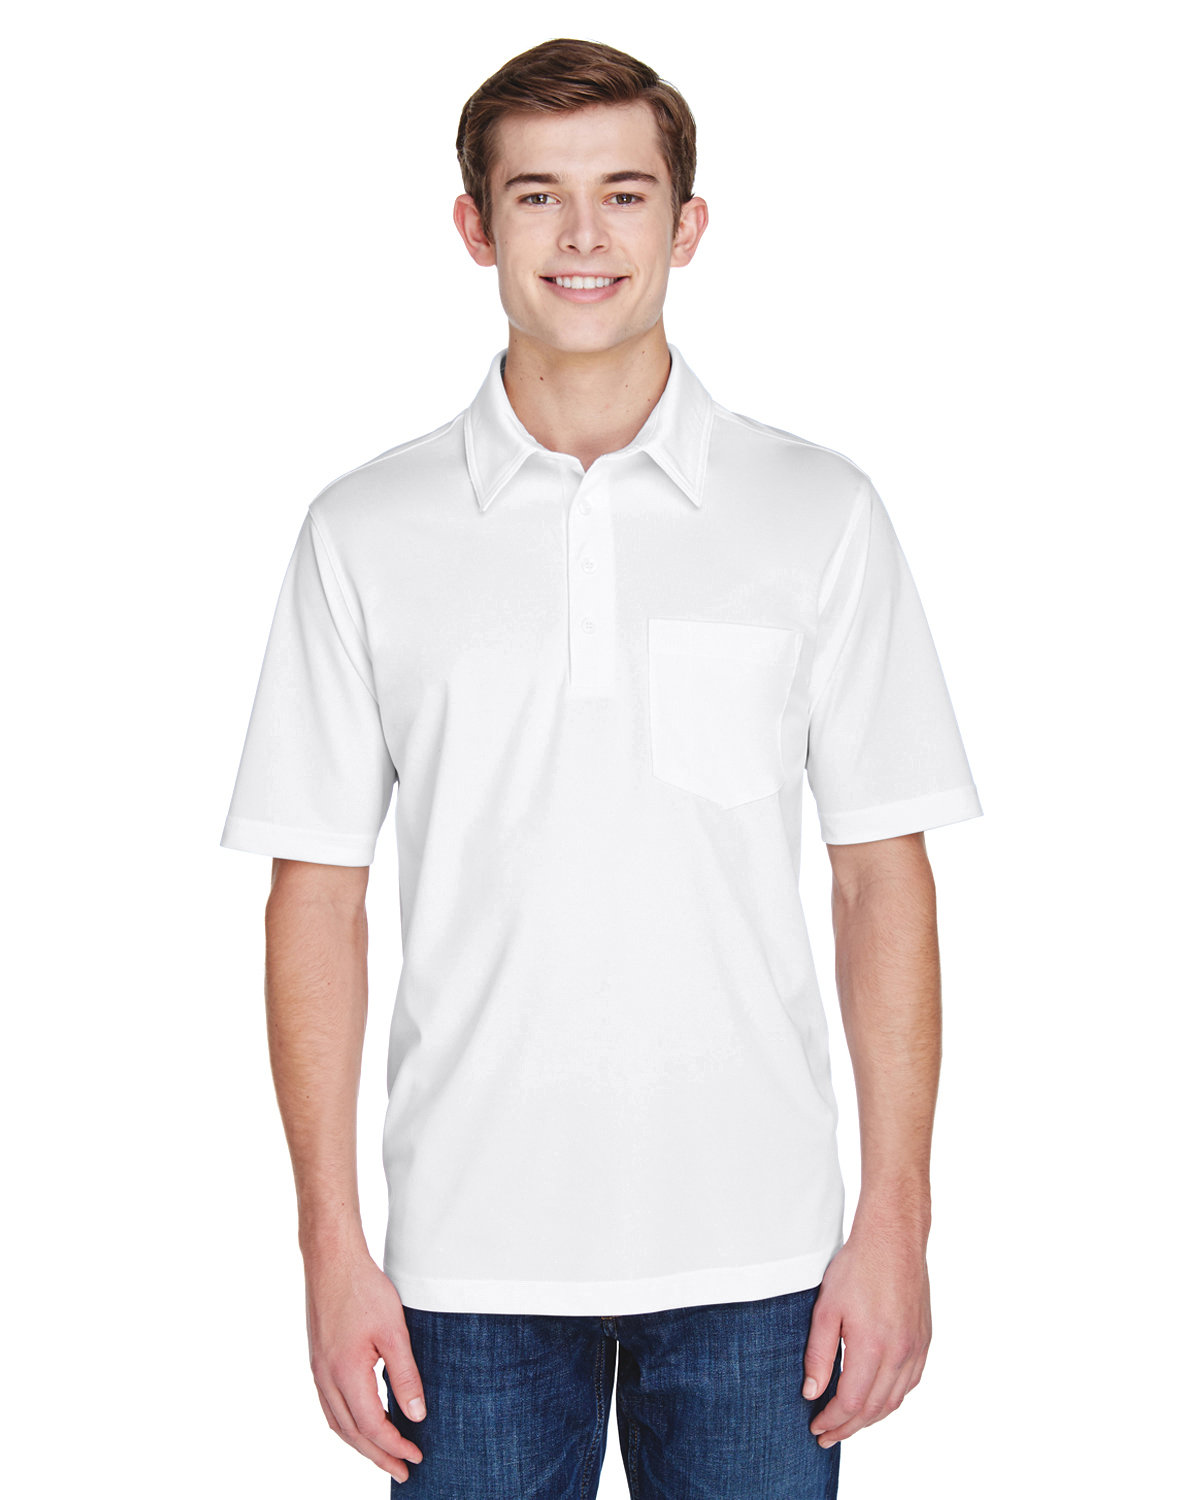 Extreme Men's Tall Eperformance™ Shift Snag Protection Plus Polo WHITE